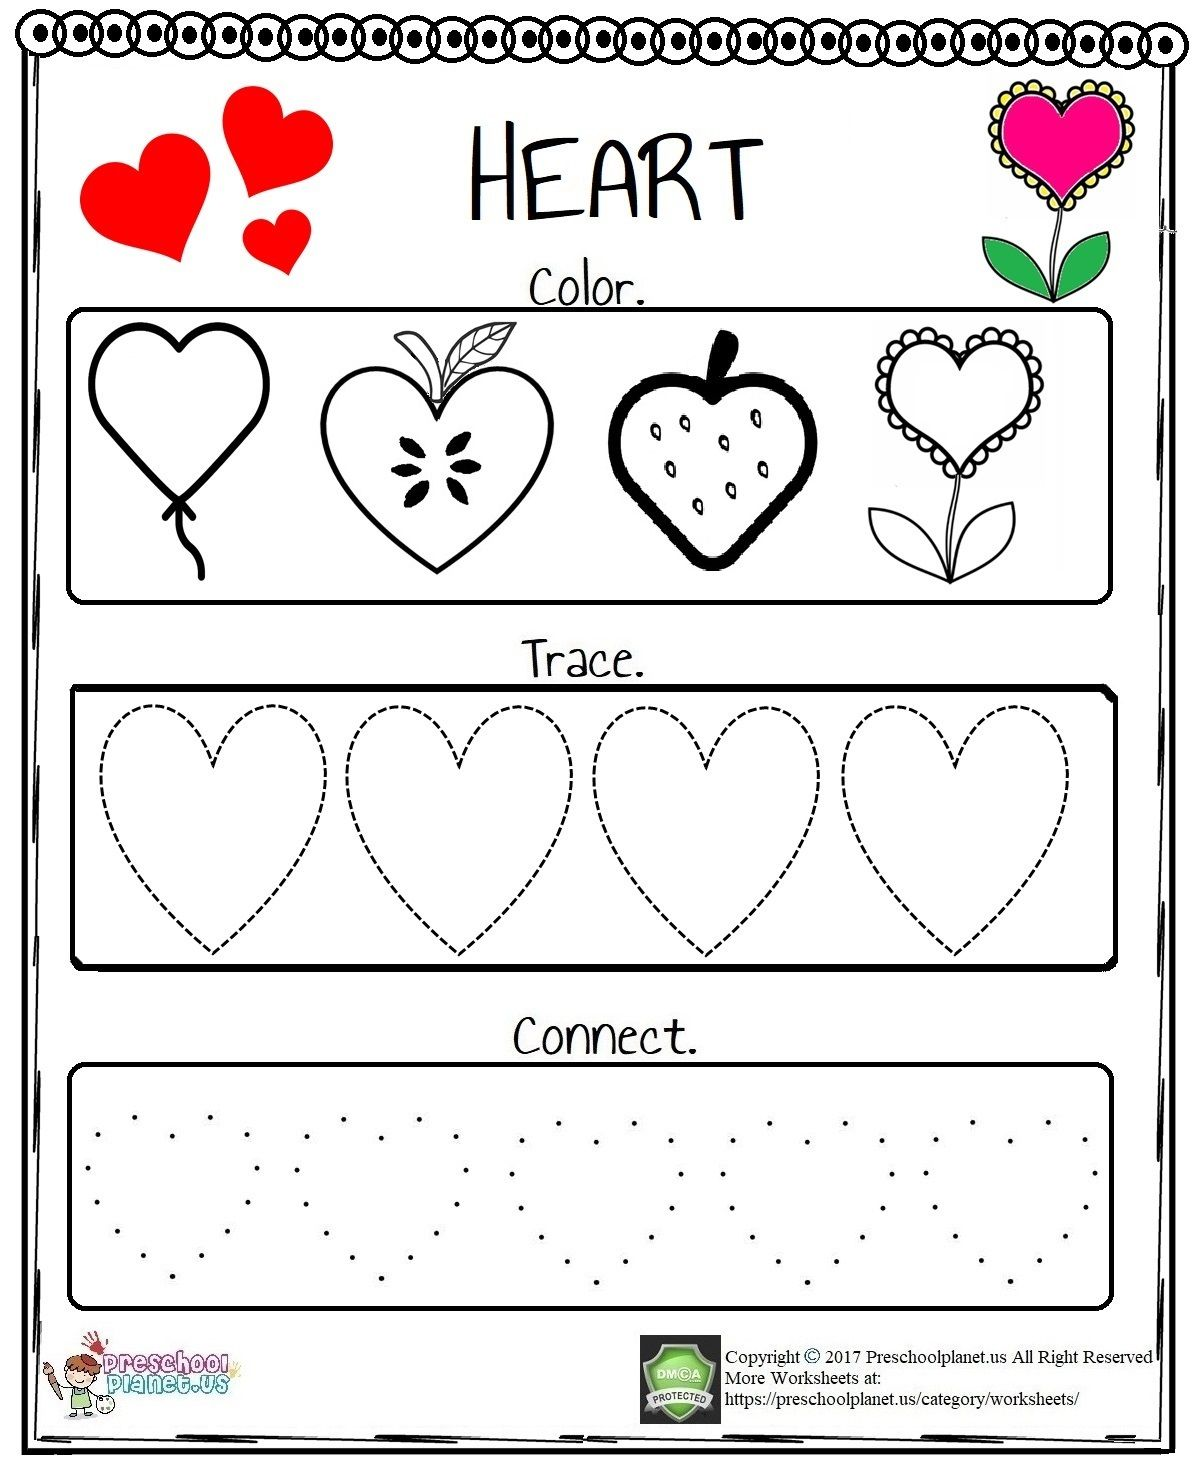 We Prepare A Lovely Heart Worksheet For Preschoolers And